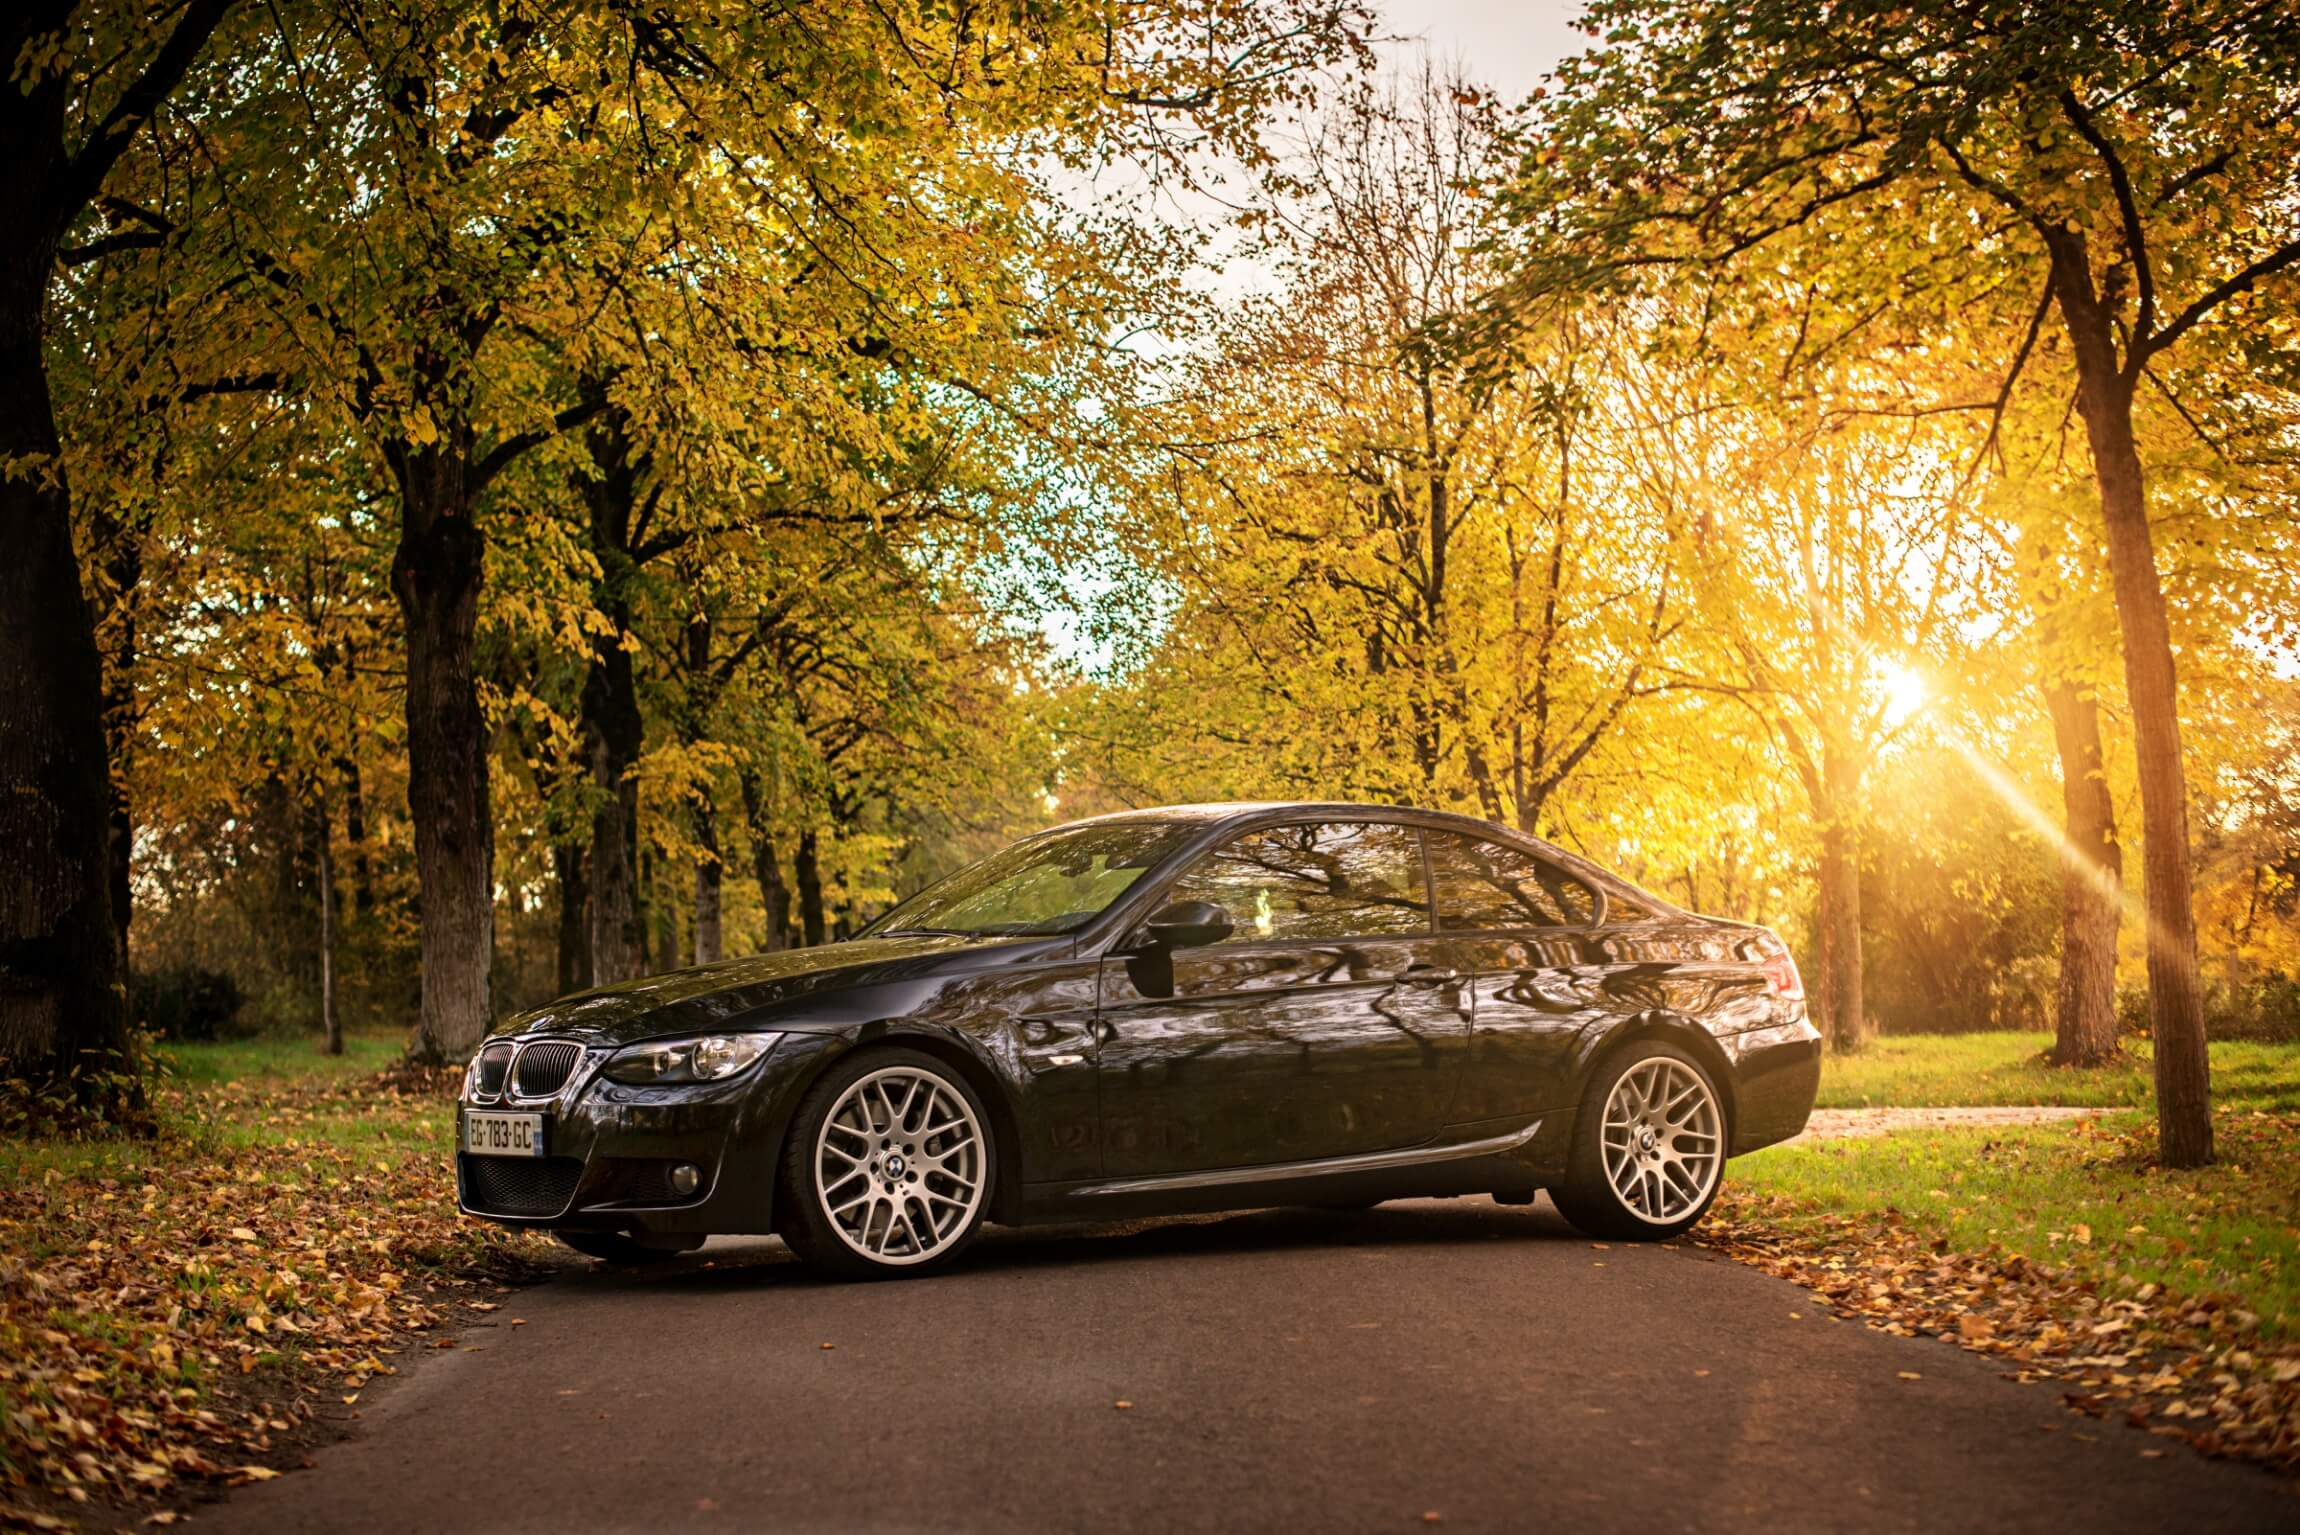 Shooting BMW 335i Nantes Rigshot